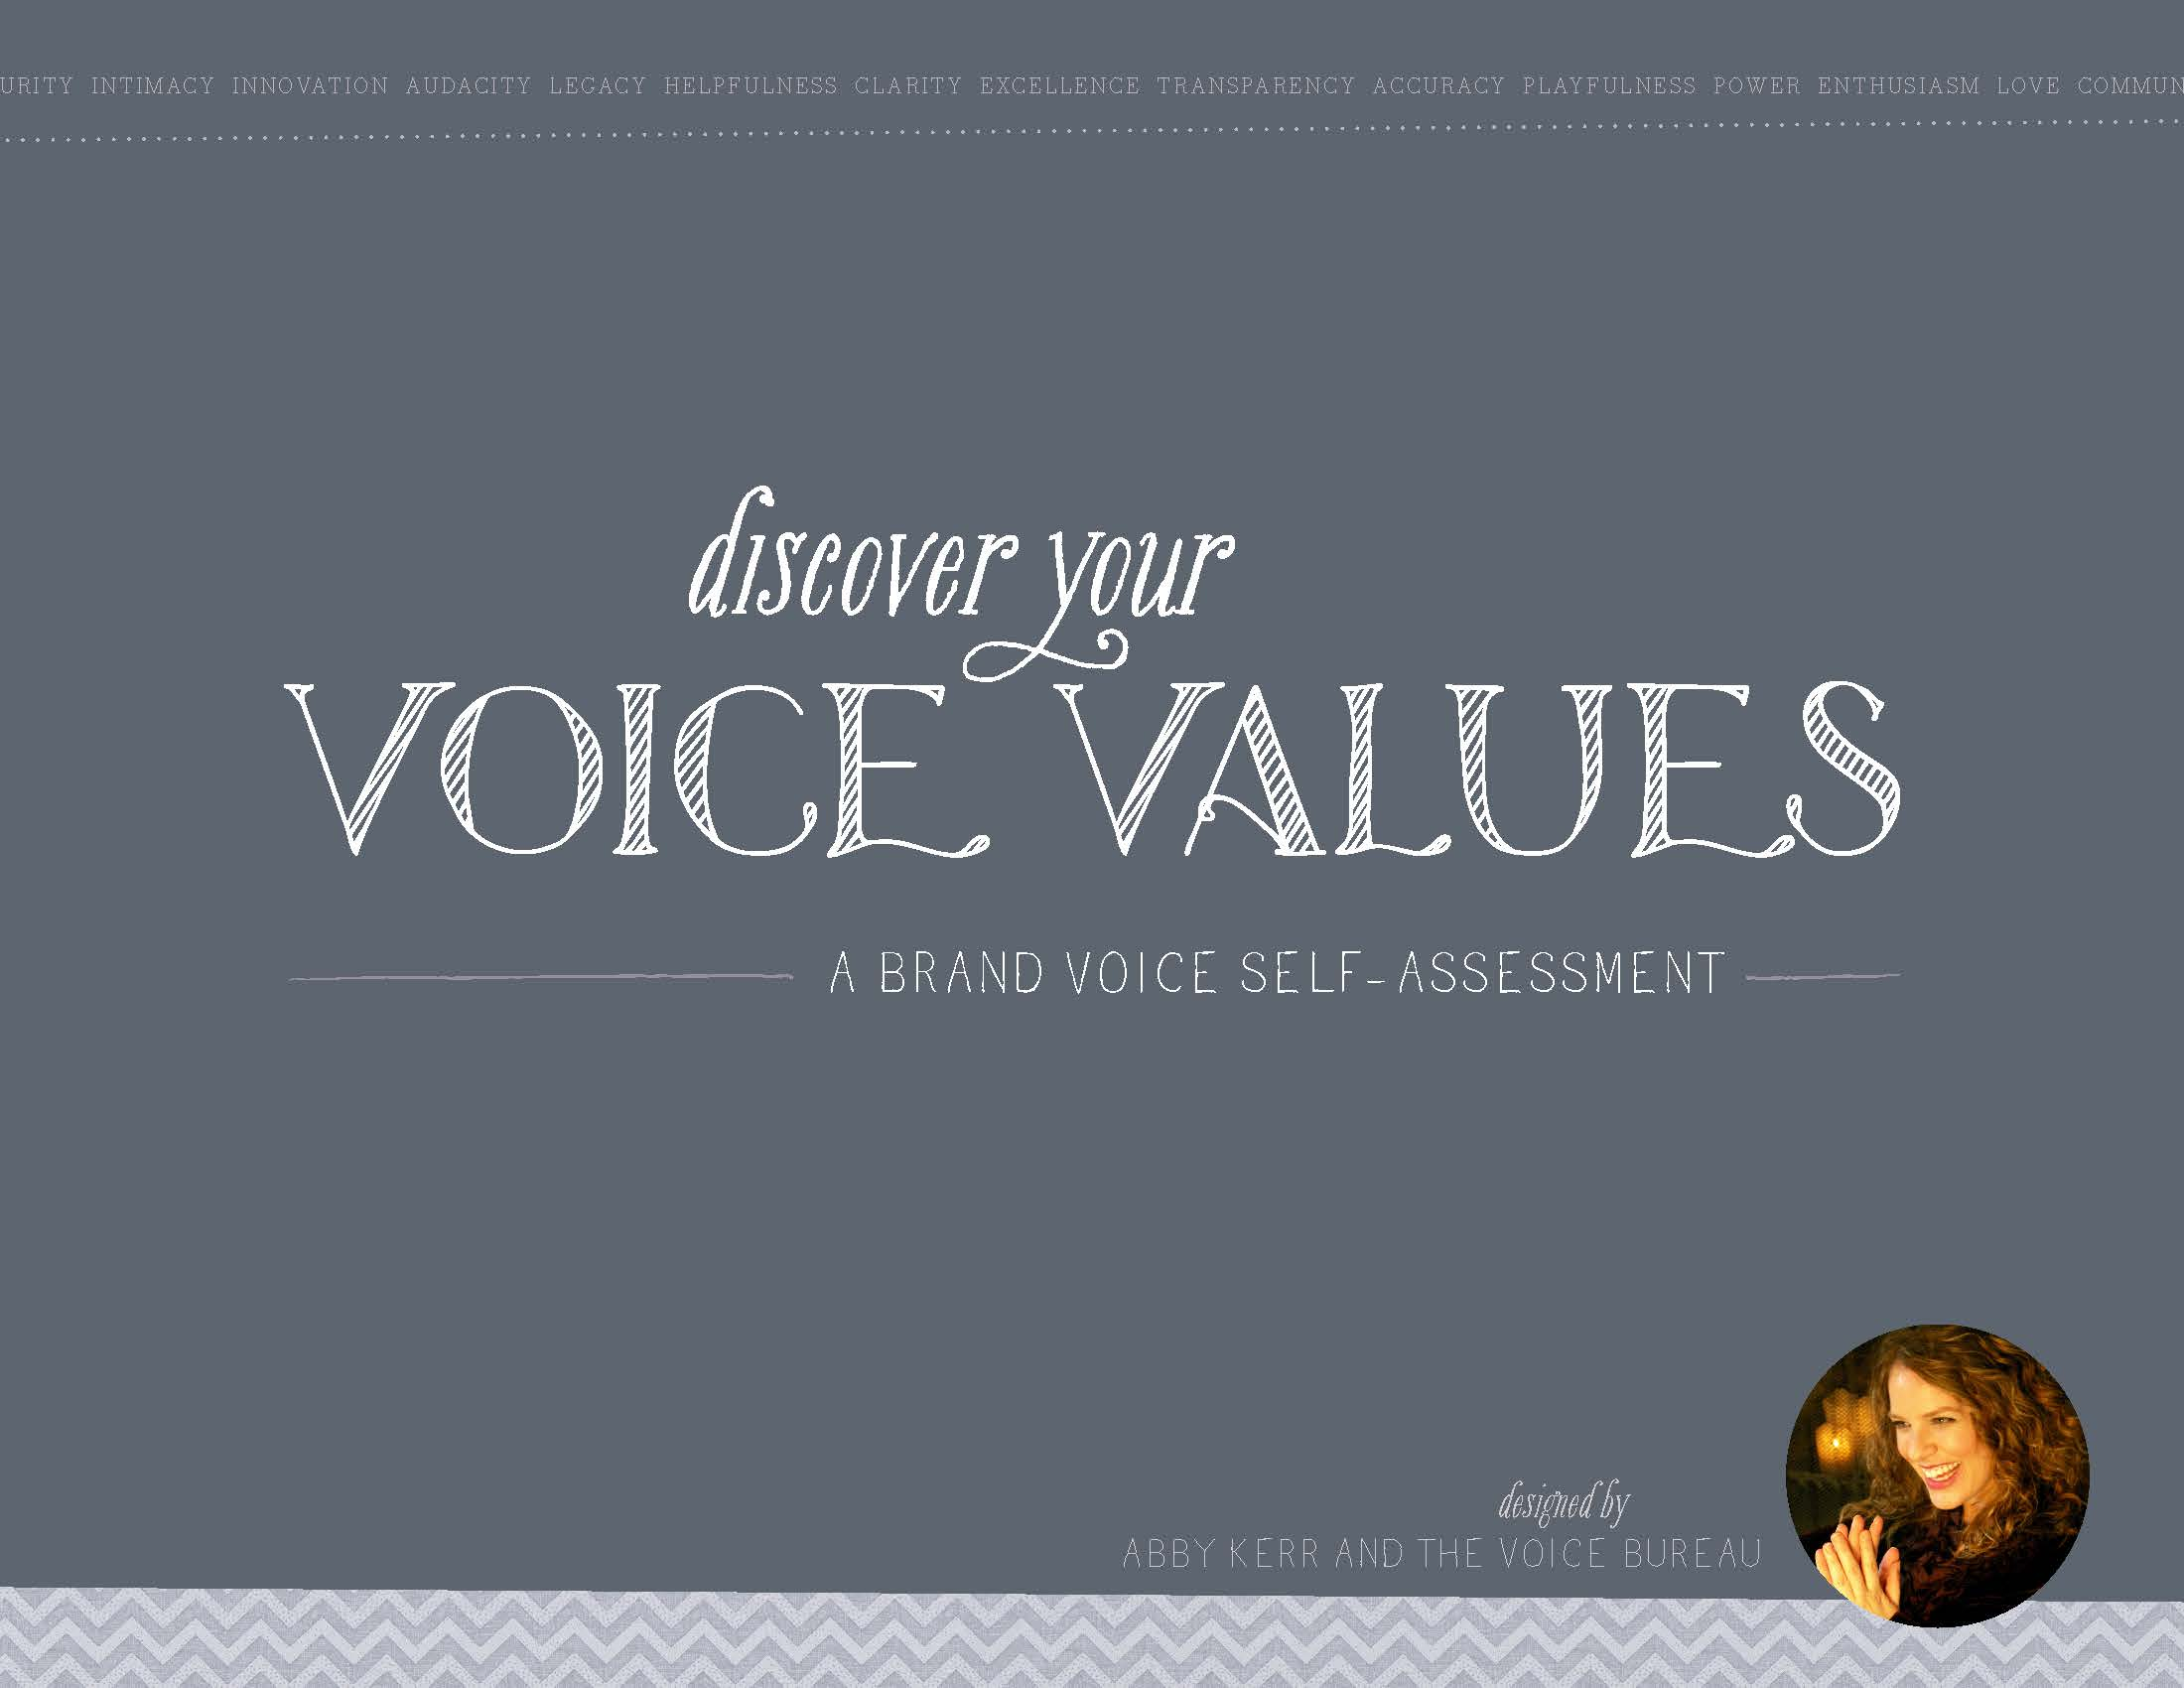 Discover Your Voice Values self-assessment